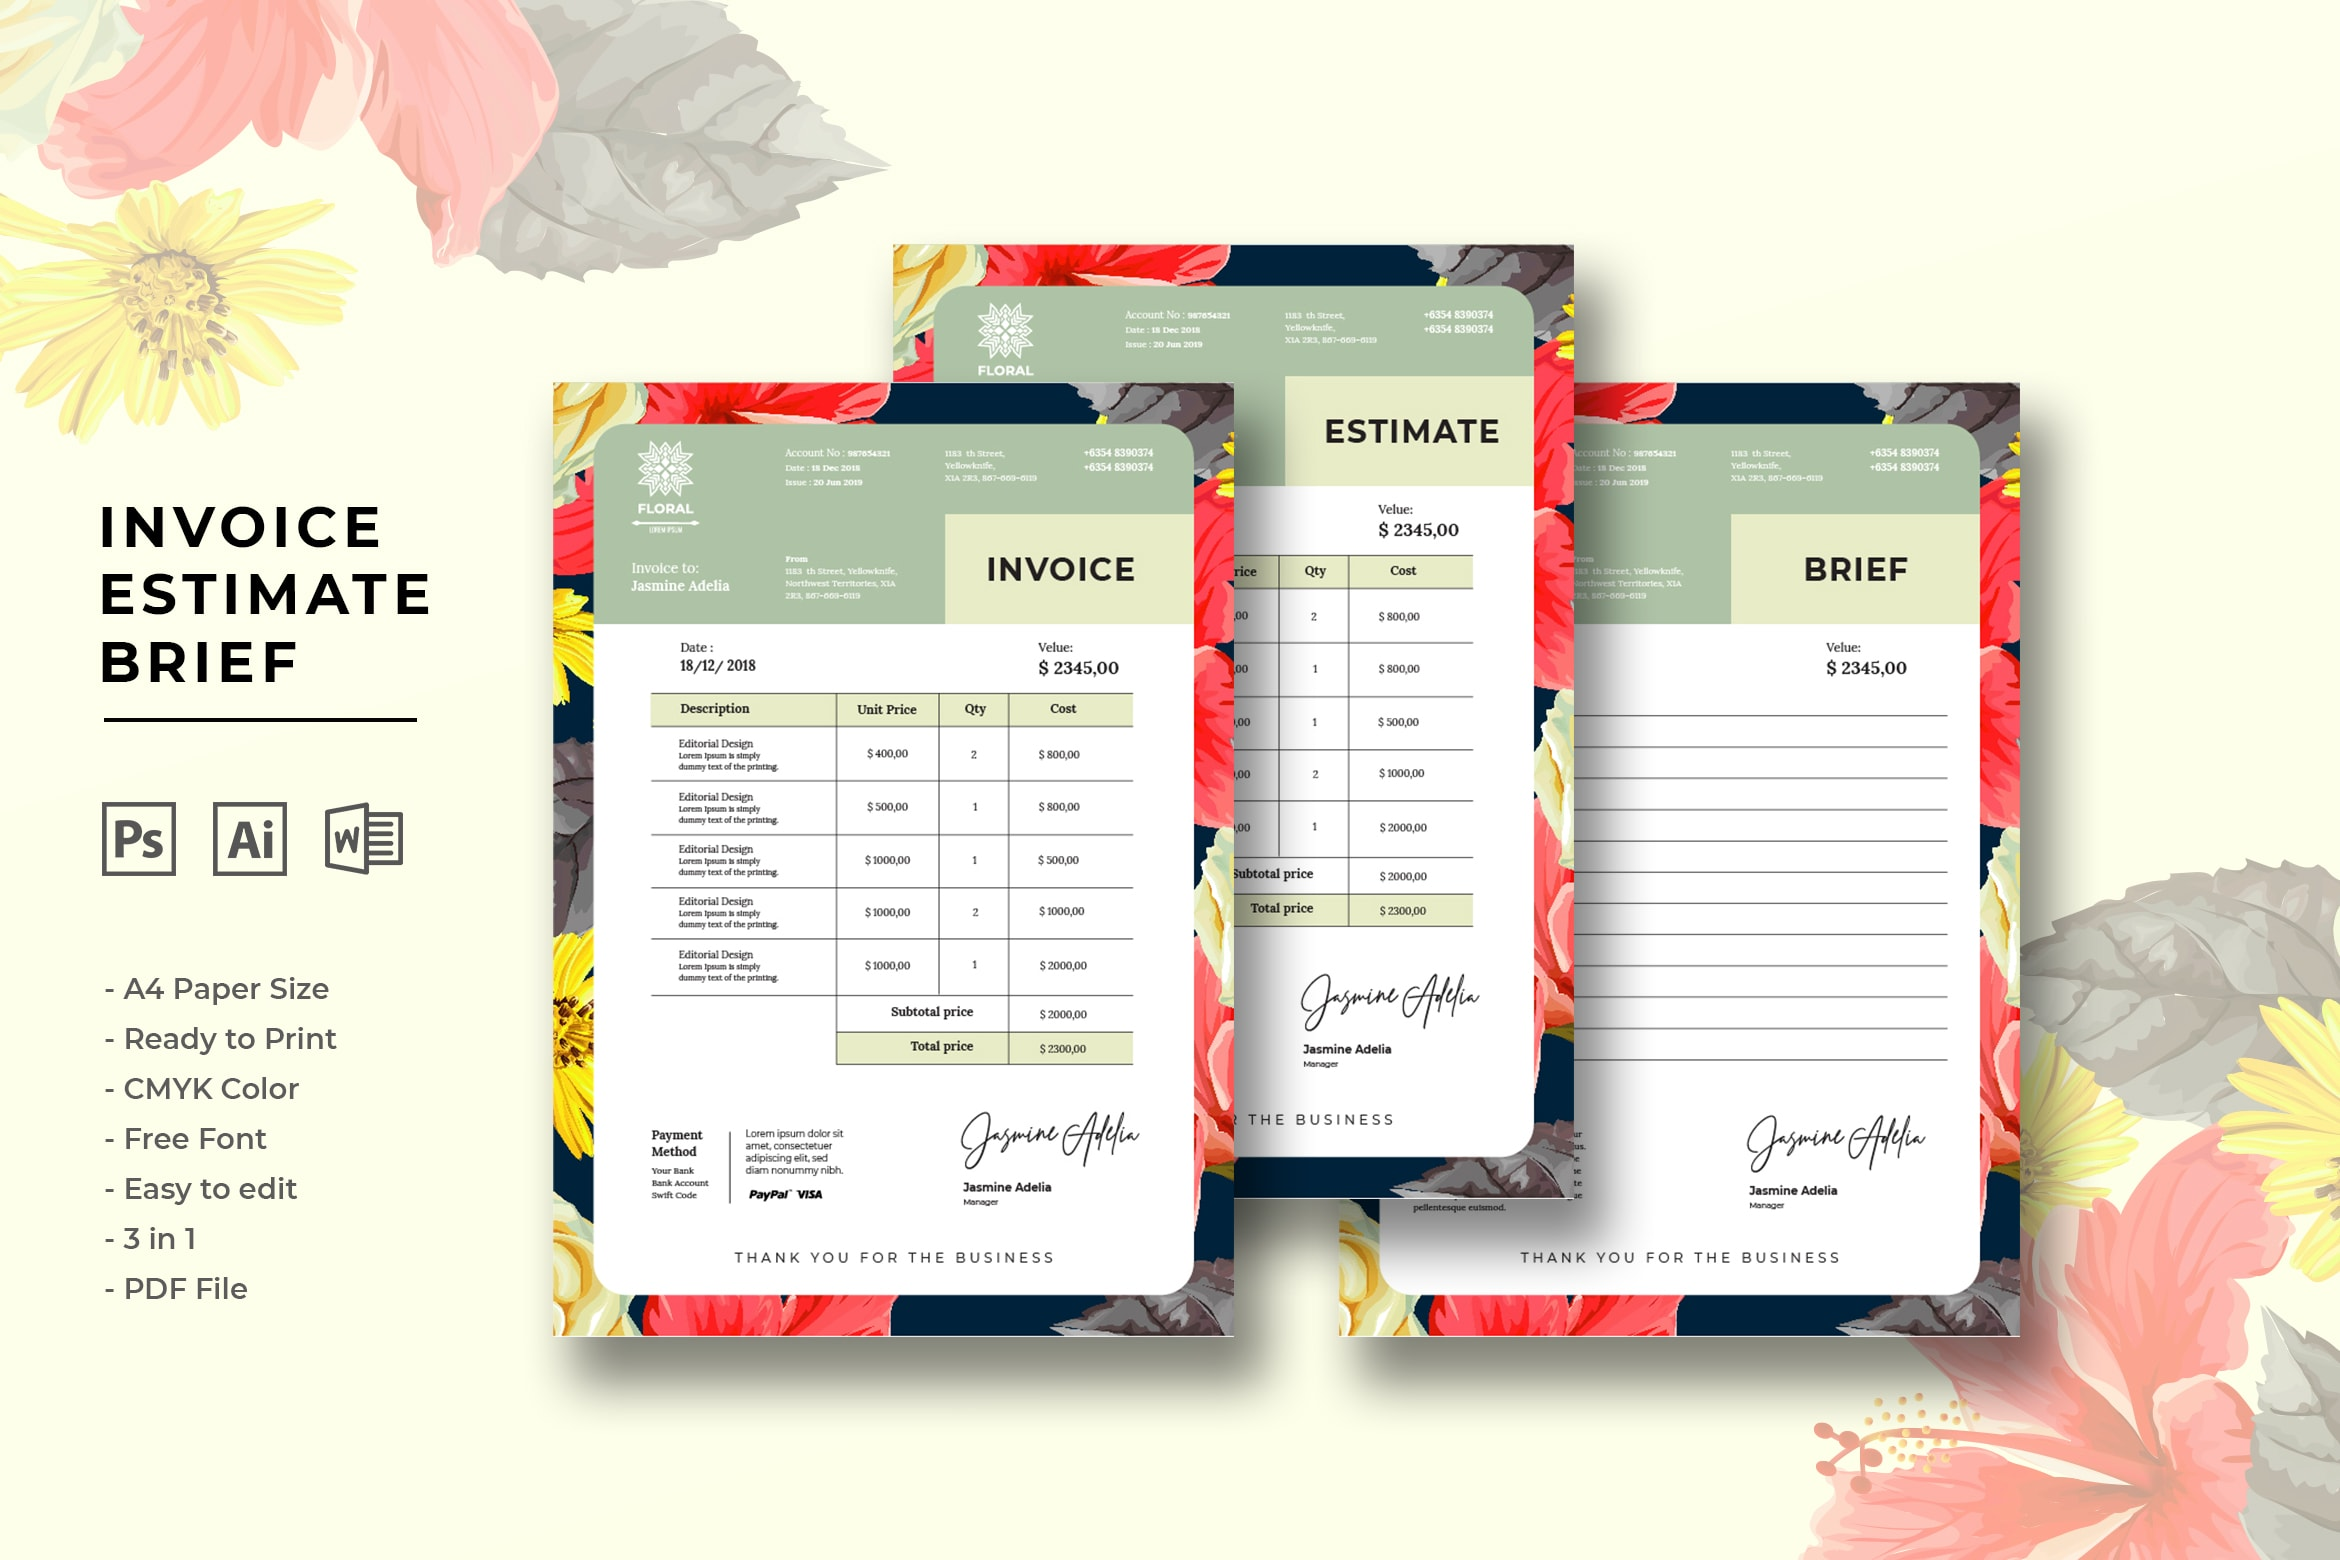 invoice design templates